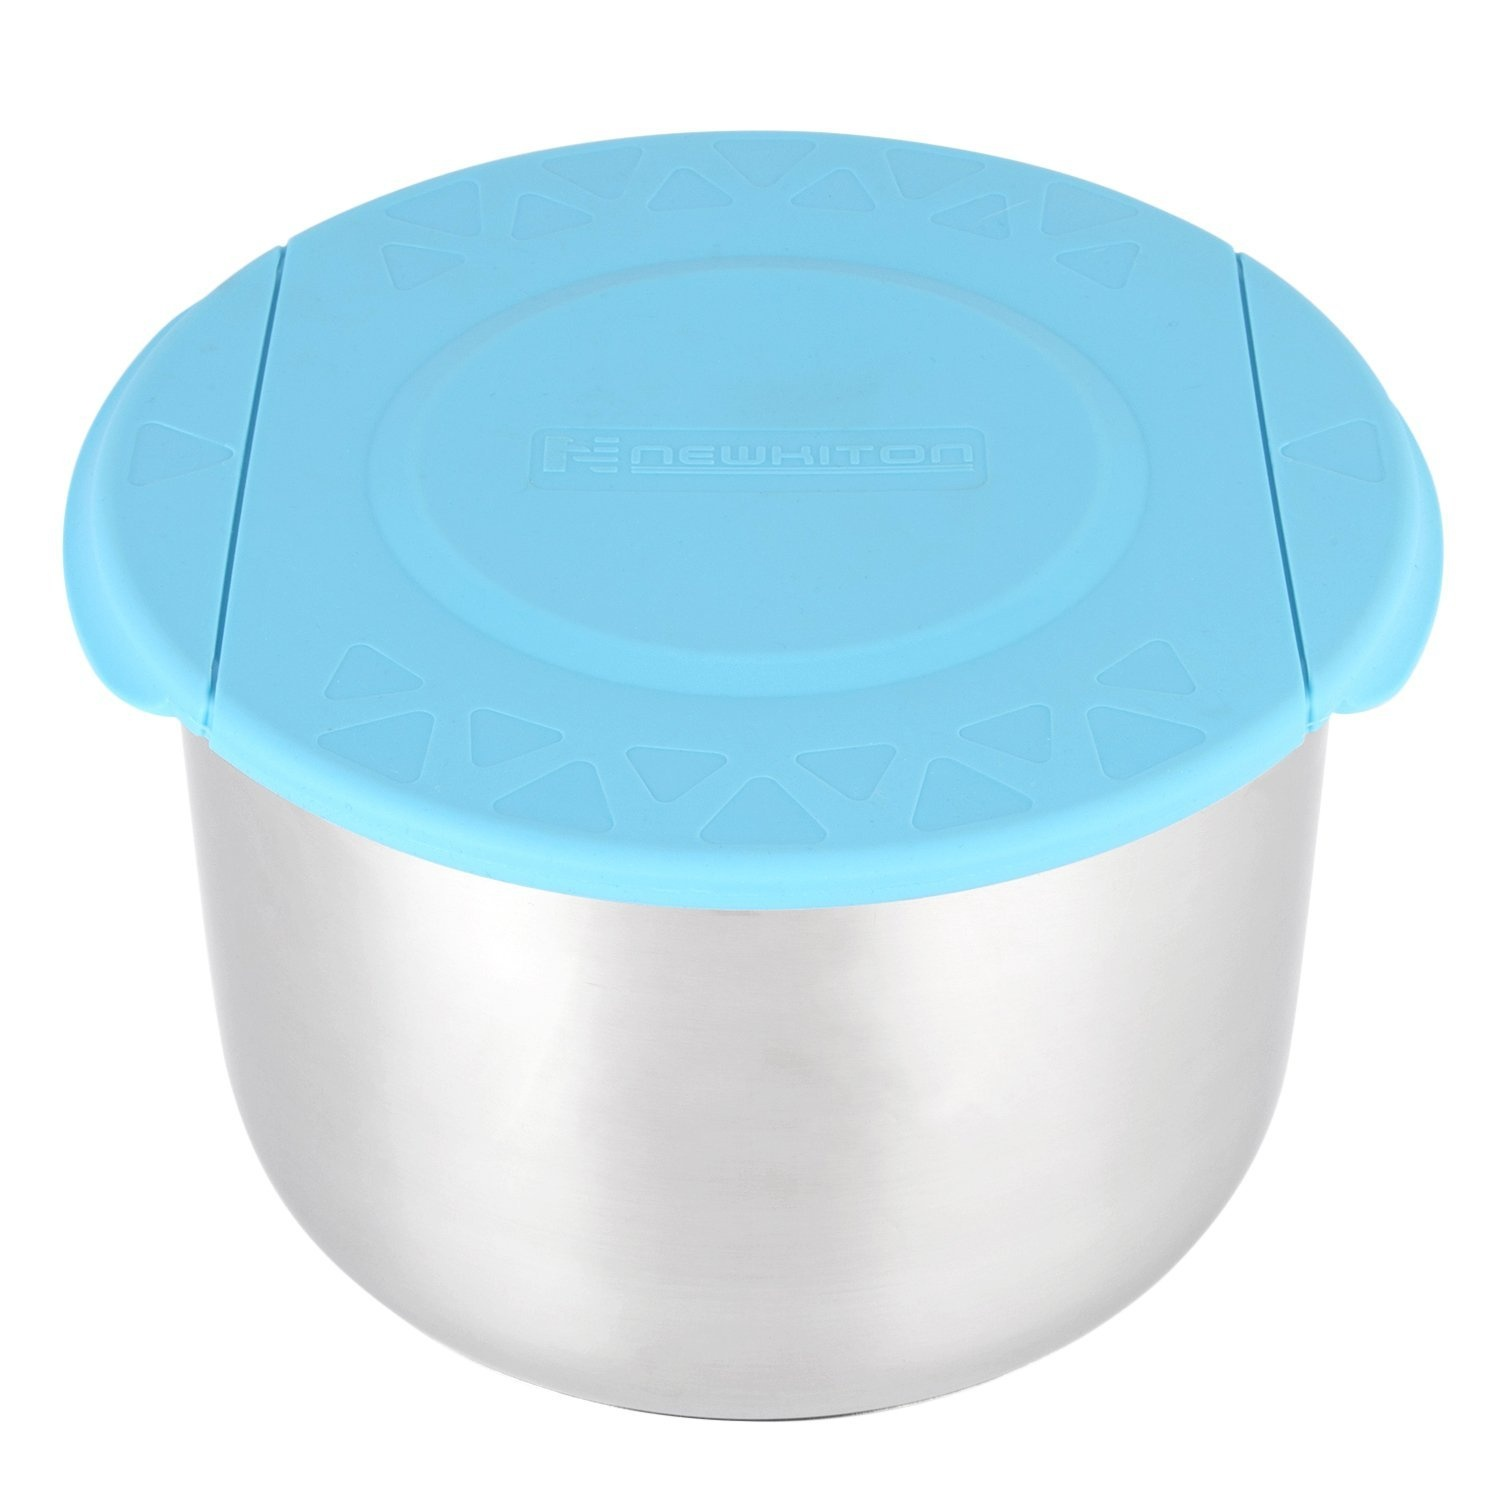 Silicone Lid Cover for Insta Pot Inner Pots (BPA-Free) - Fits IP ...